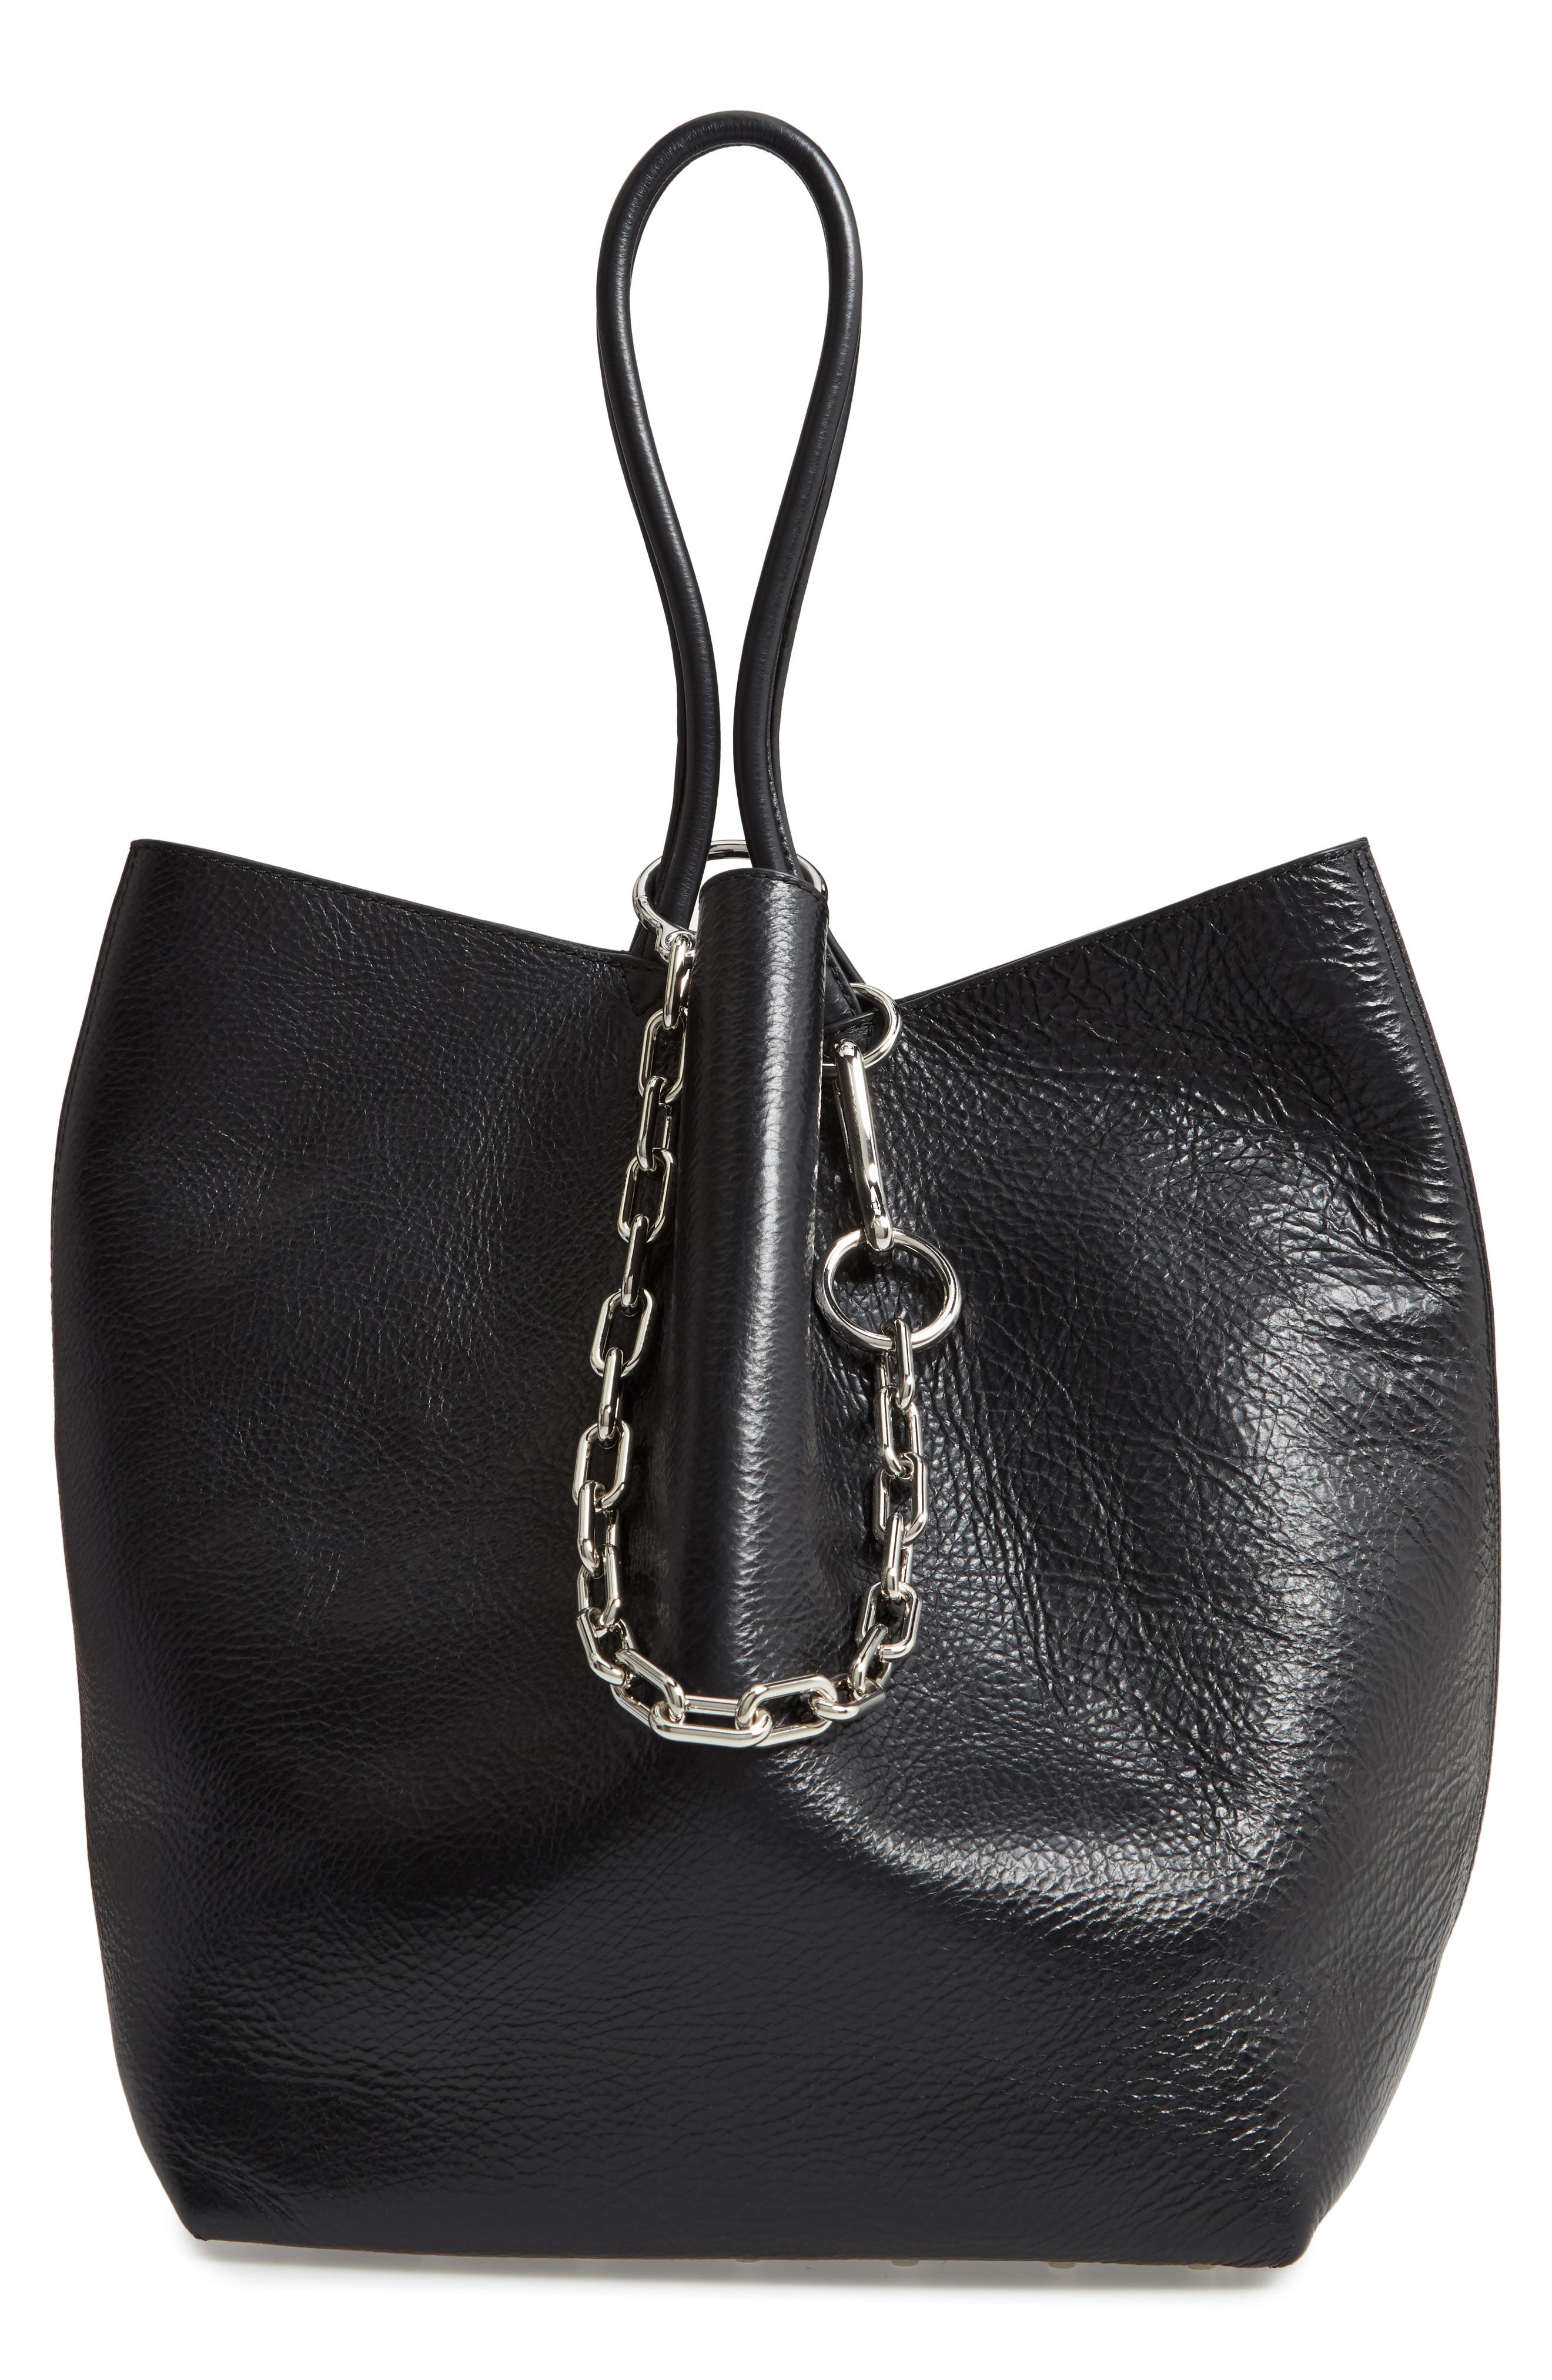 ALEXANDER WANG, Large Roxy Leather Tote Bag, Main thumbnail 1, color, BLACK